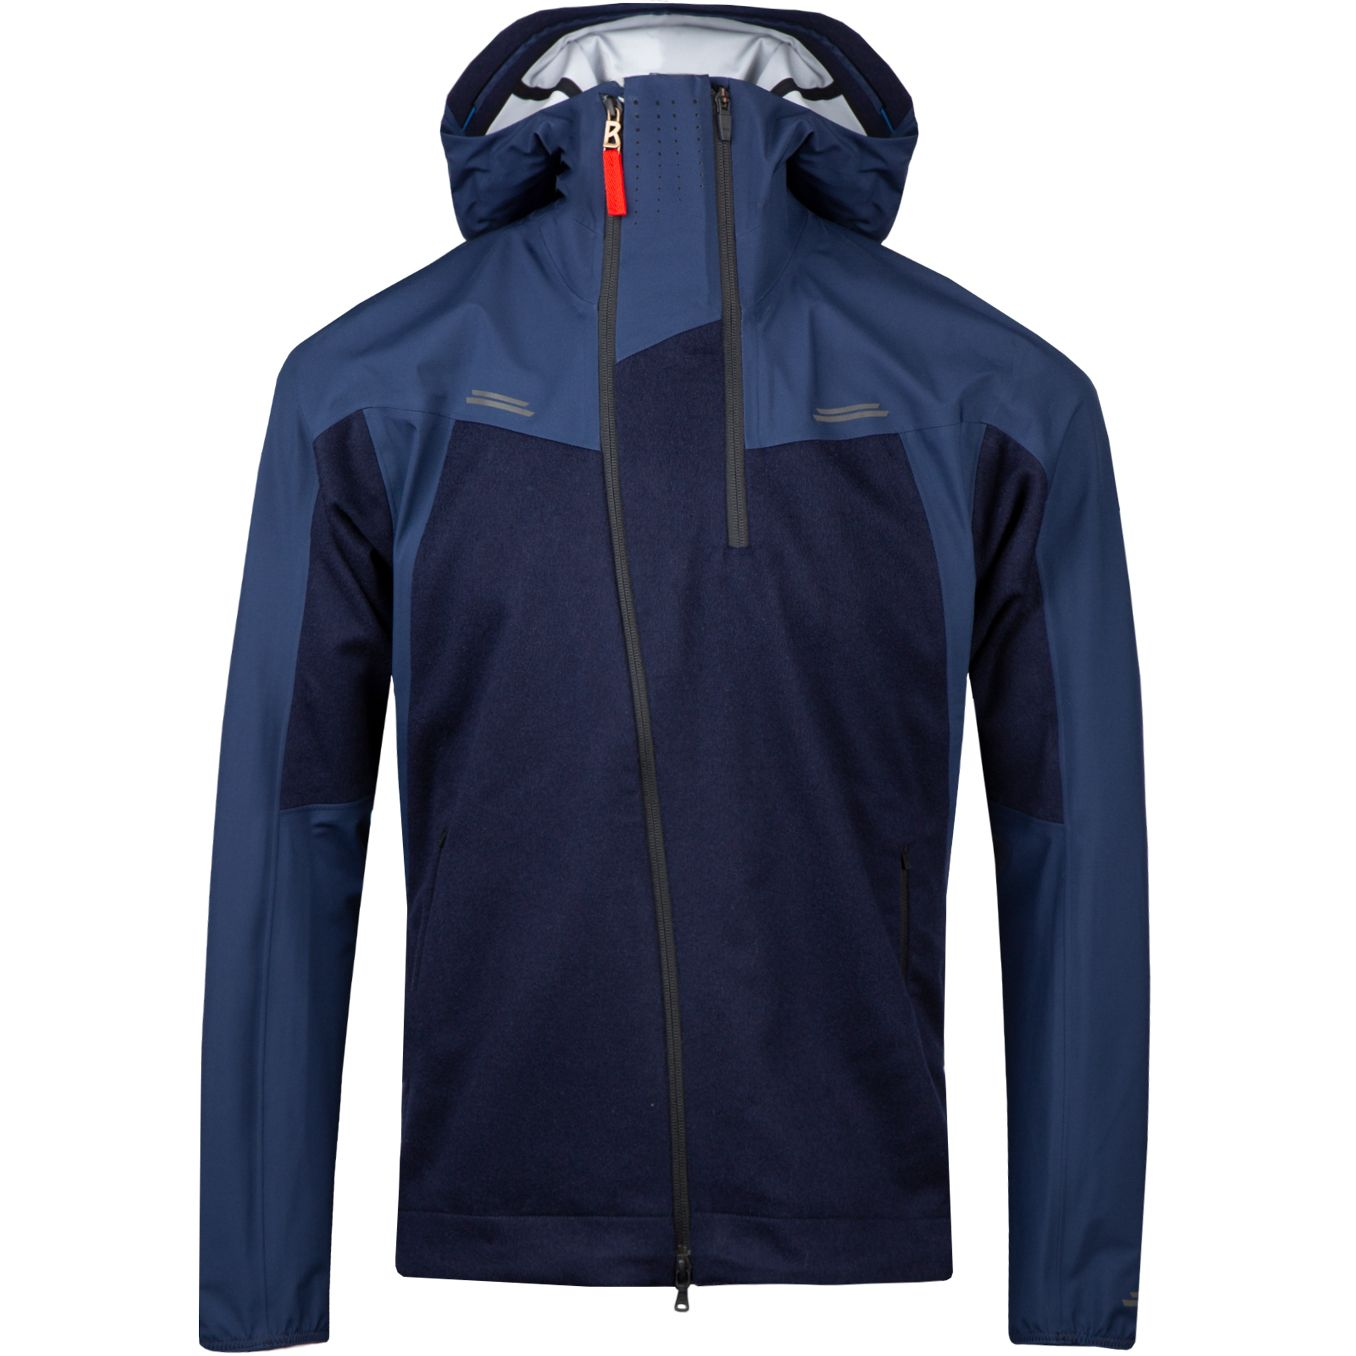 This Exclusive Loden Blend Jacket Was Created In Cooperation With